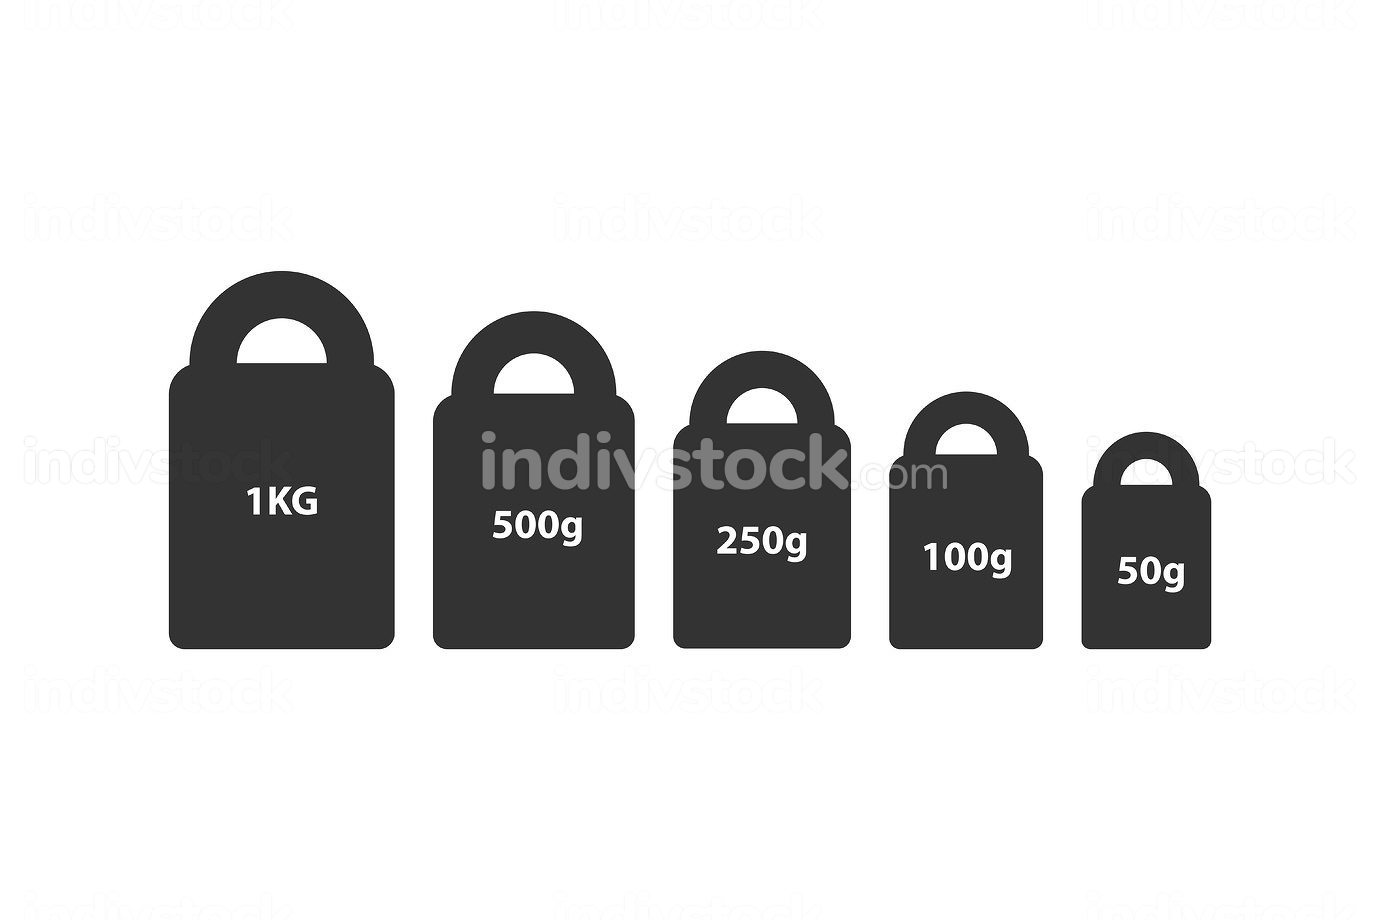 Kg weight mass black simple flat icon set. Old barbell press collection in flat design. Black silhouette isolated on white background. Weight pictogram. Metric system of units